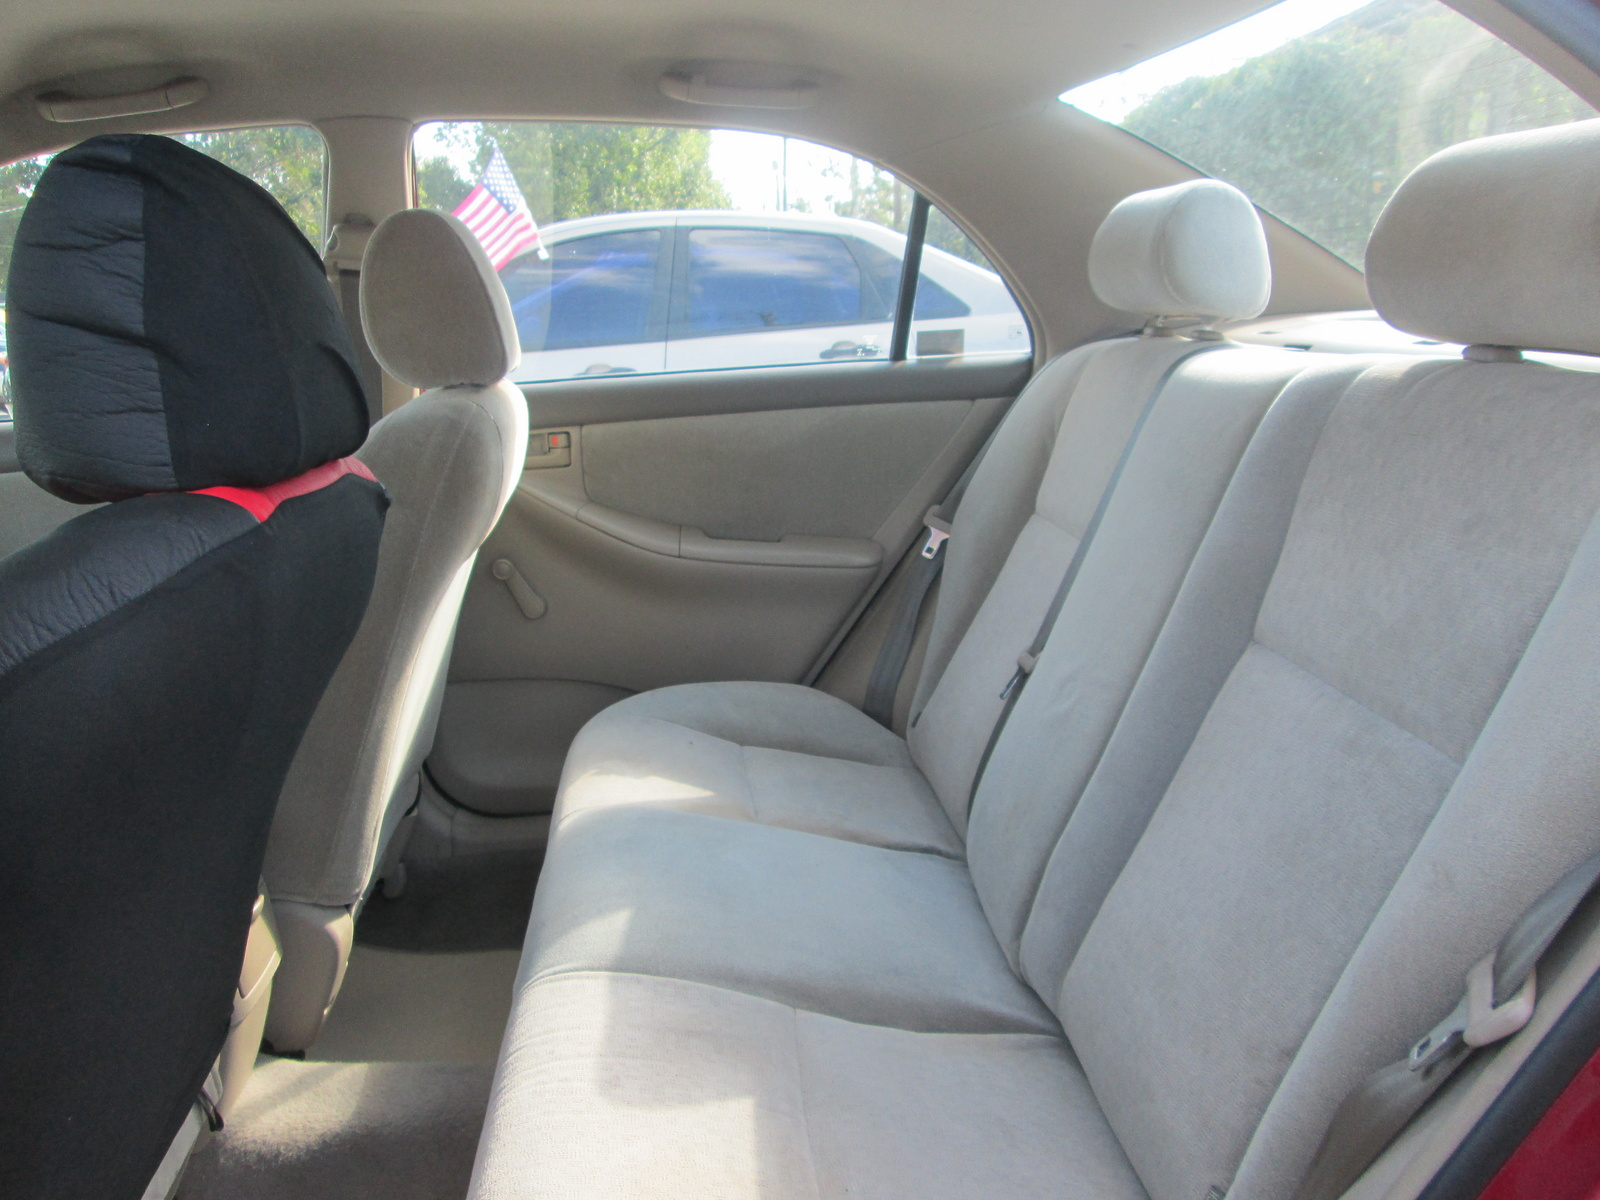 2003 toyota corolla ce interior viewing gallery